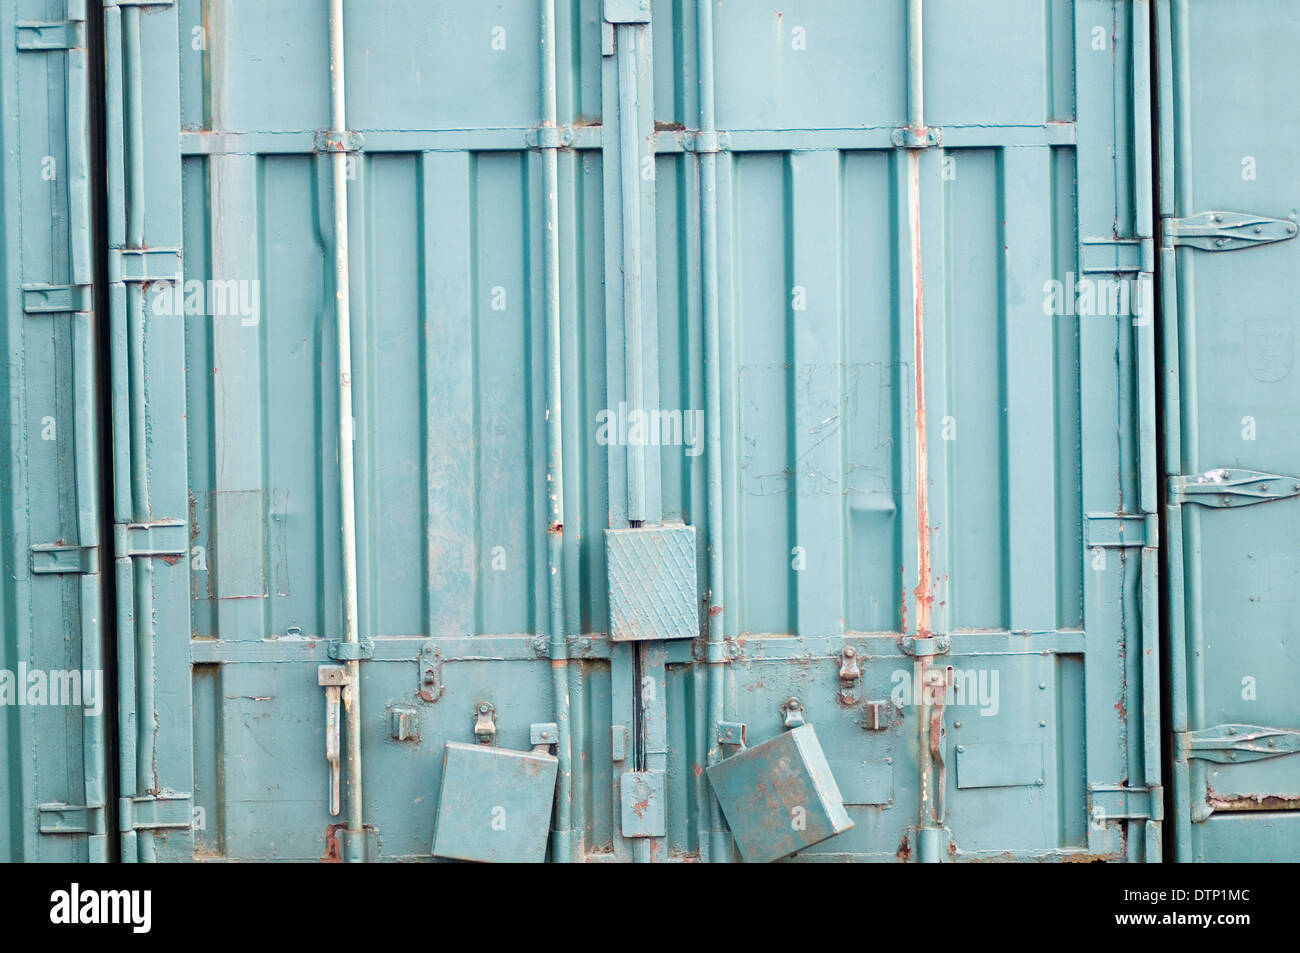 shipping containers container locked lock locks secure security Stock Photo